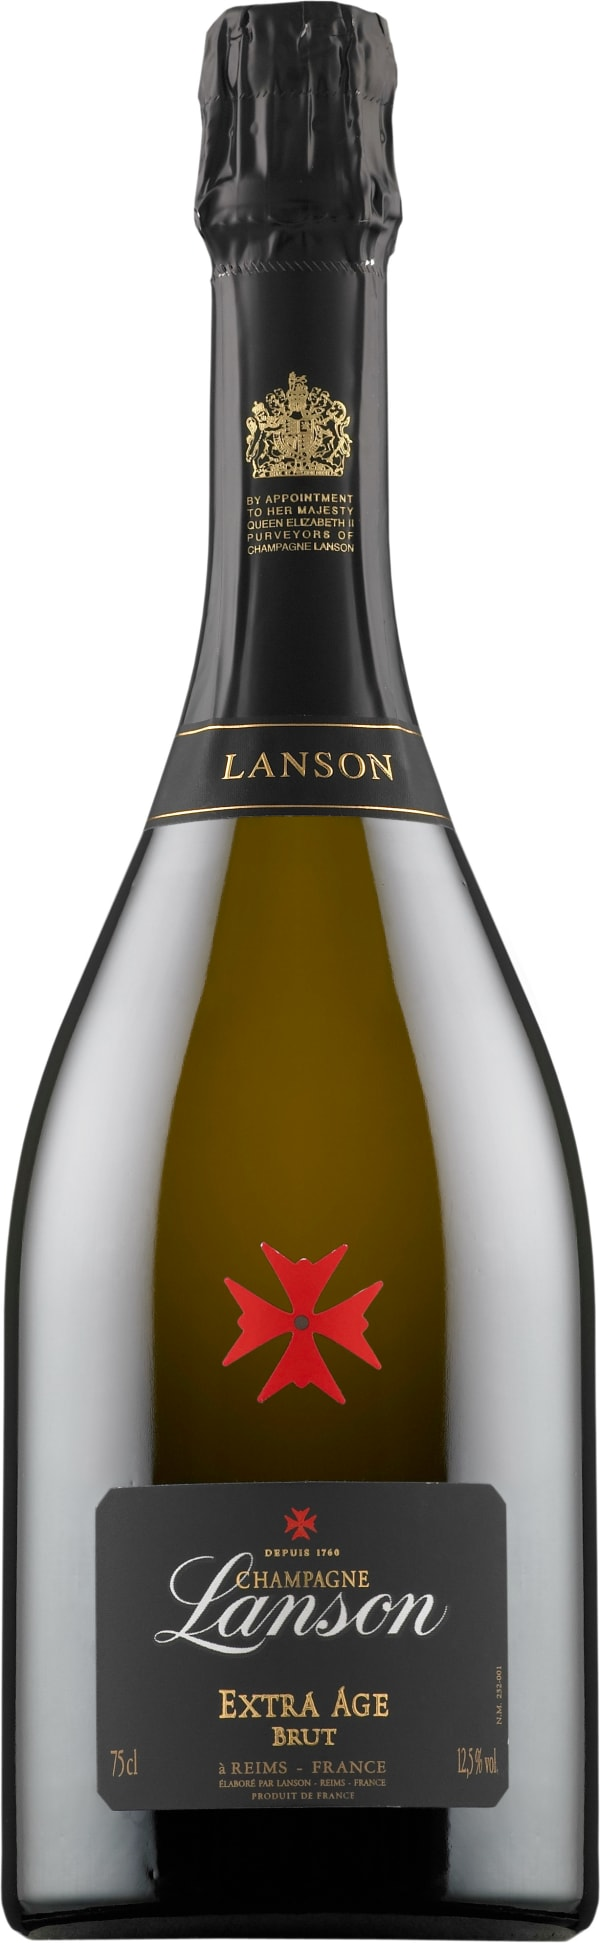 Lanson Extra Age Champagne Brut